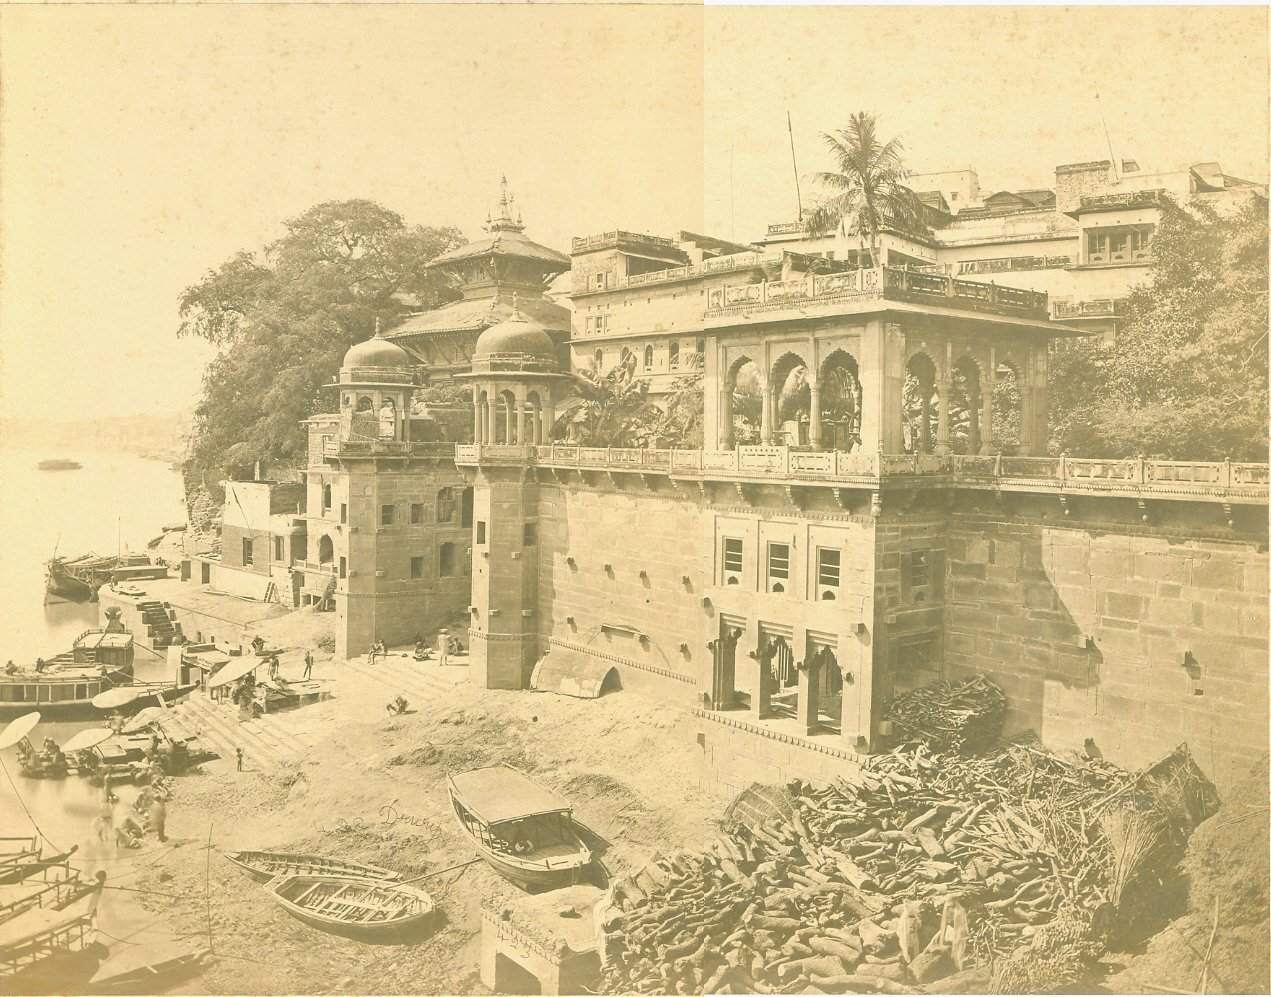 The Nepaulese Temple in Benares, an albumen photo by Drury, c.1860's